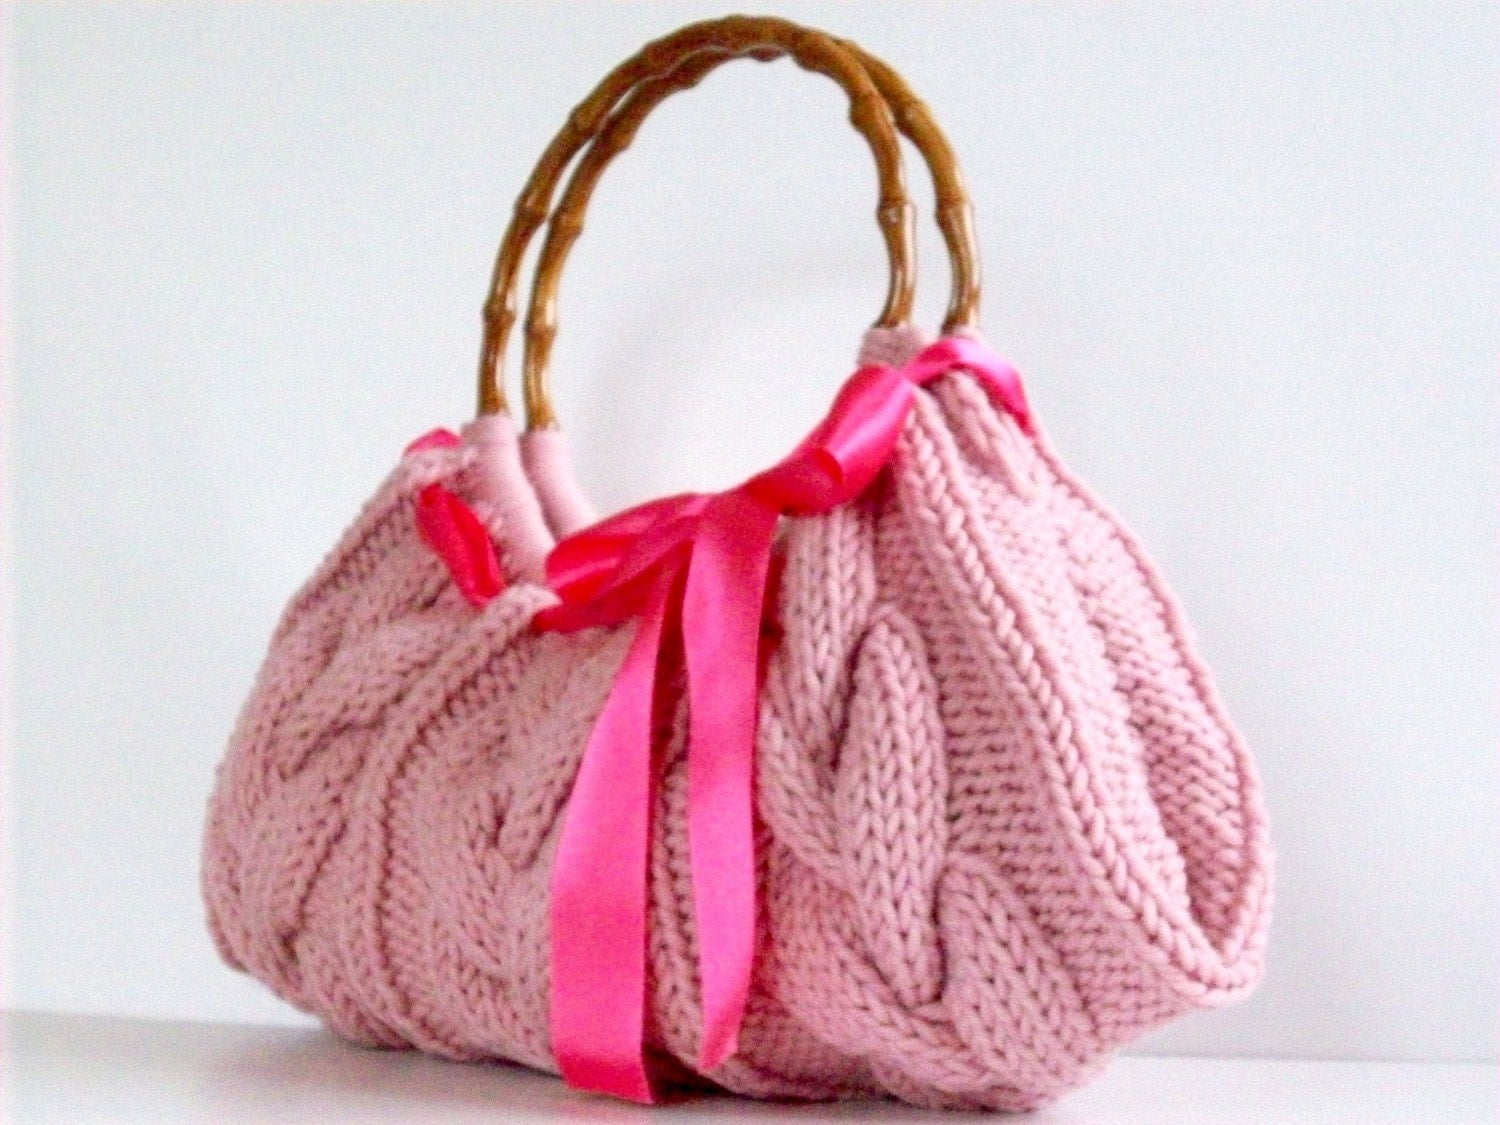 Handmade Knitting Bag Pattern : Knitted bag NzLbags Handmade Handbag Shoulder Bag by NzLbags